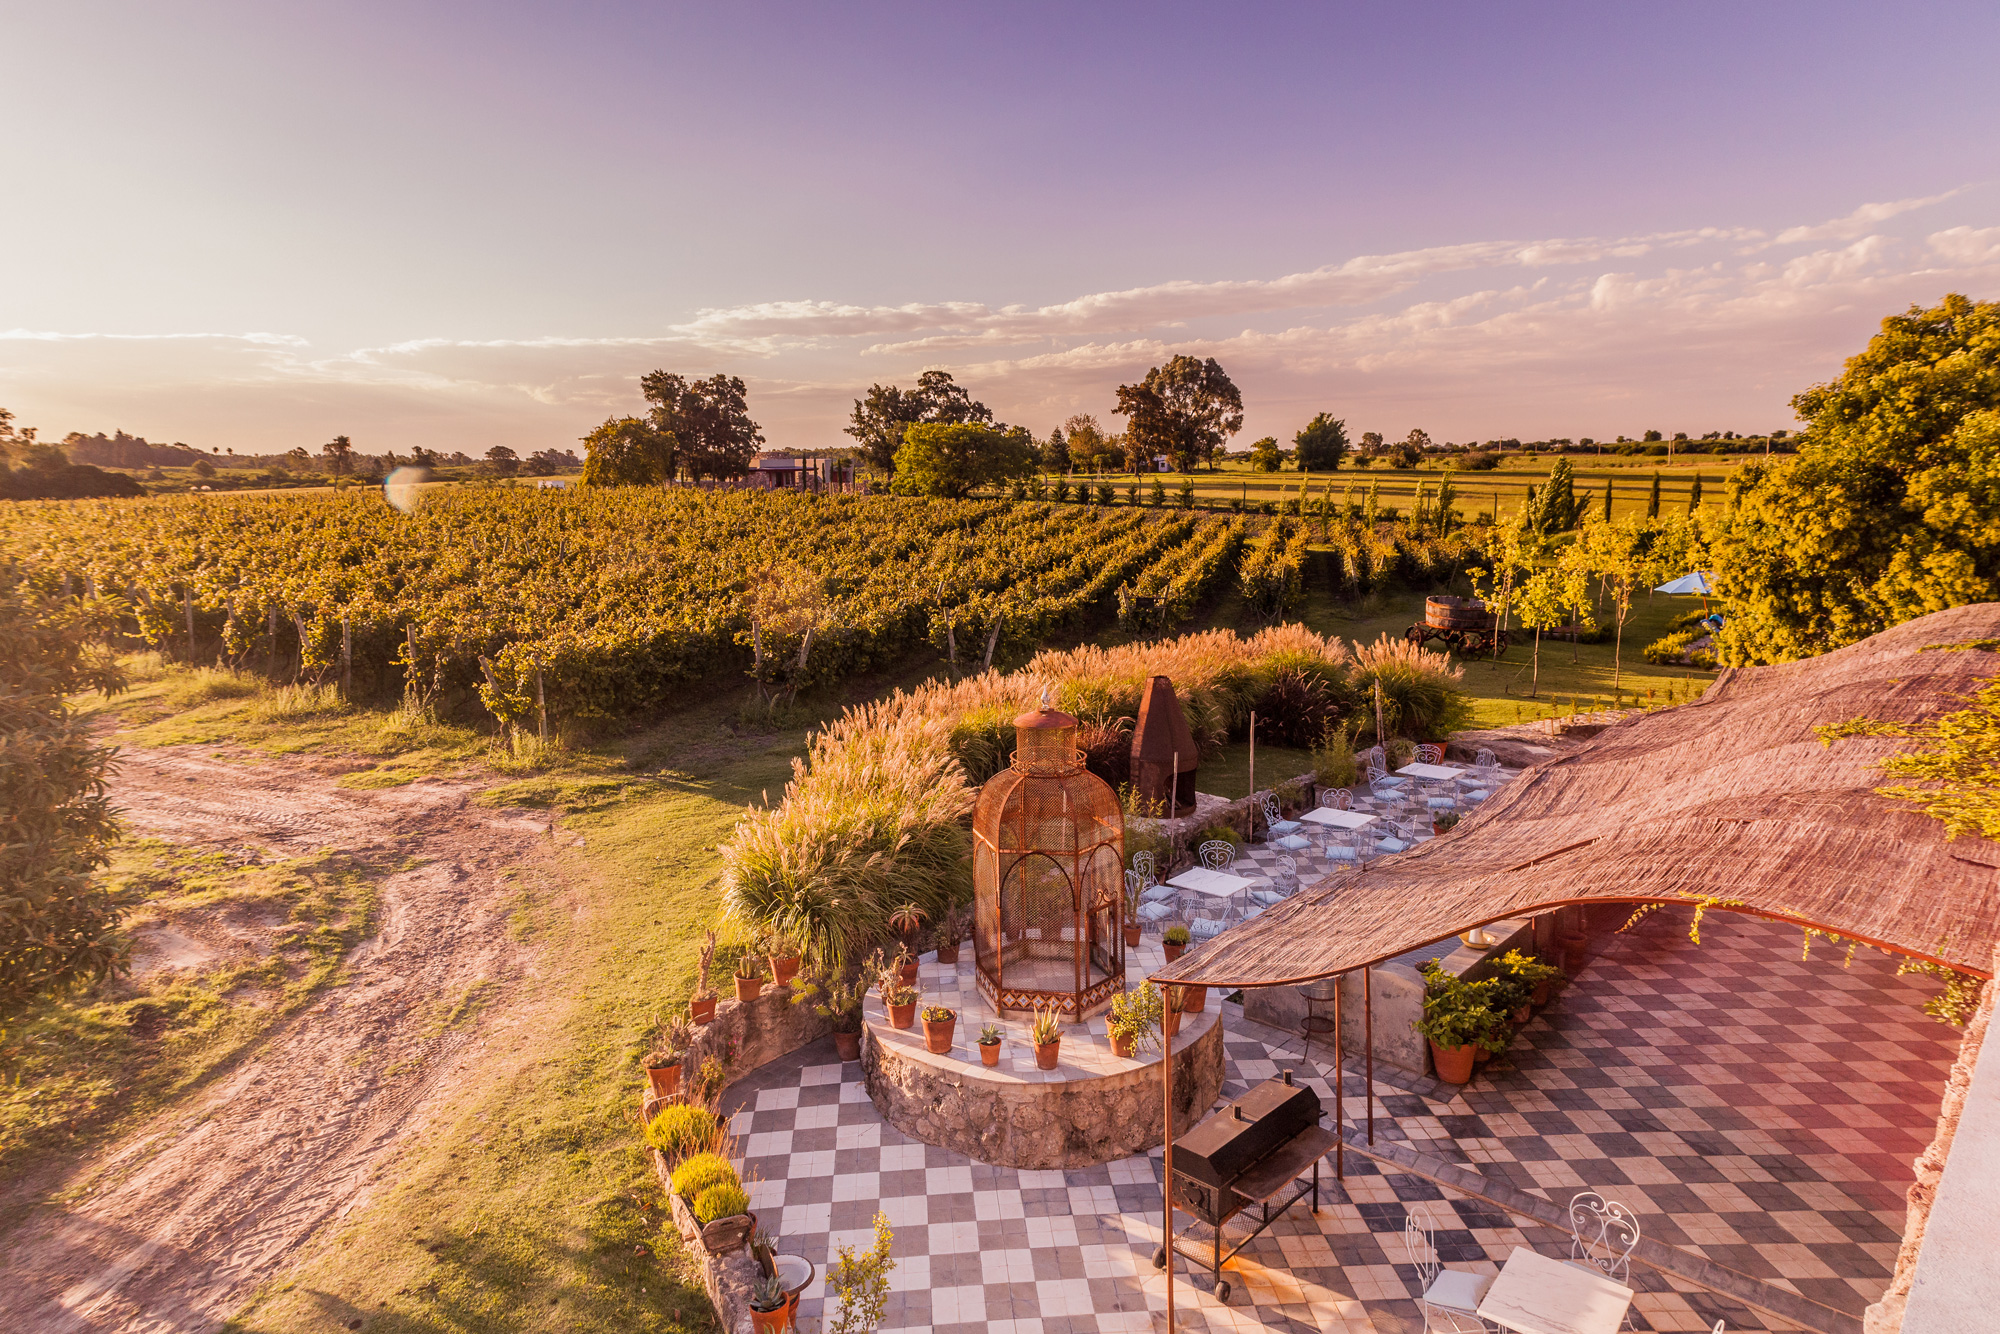 Foto: Narbona wine lodge